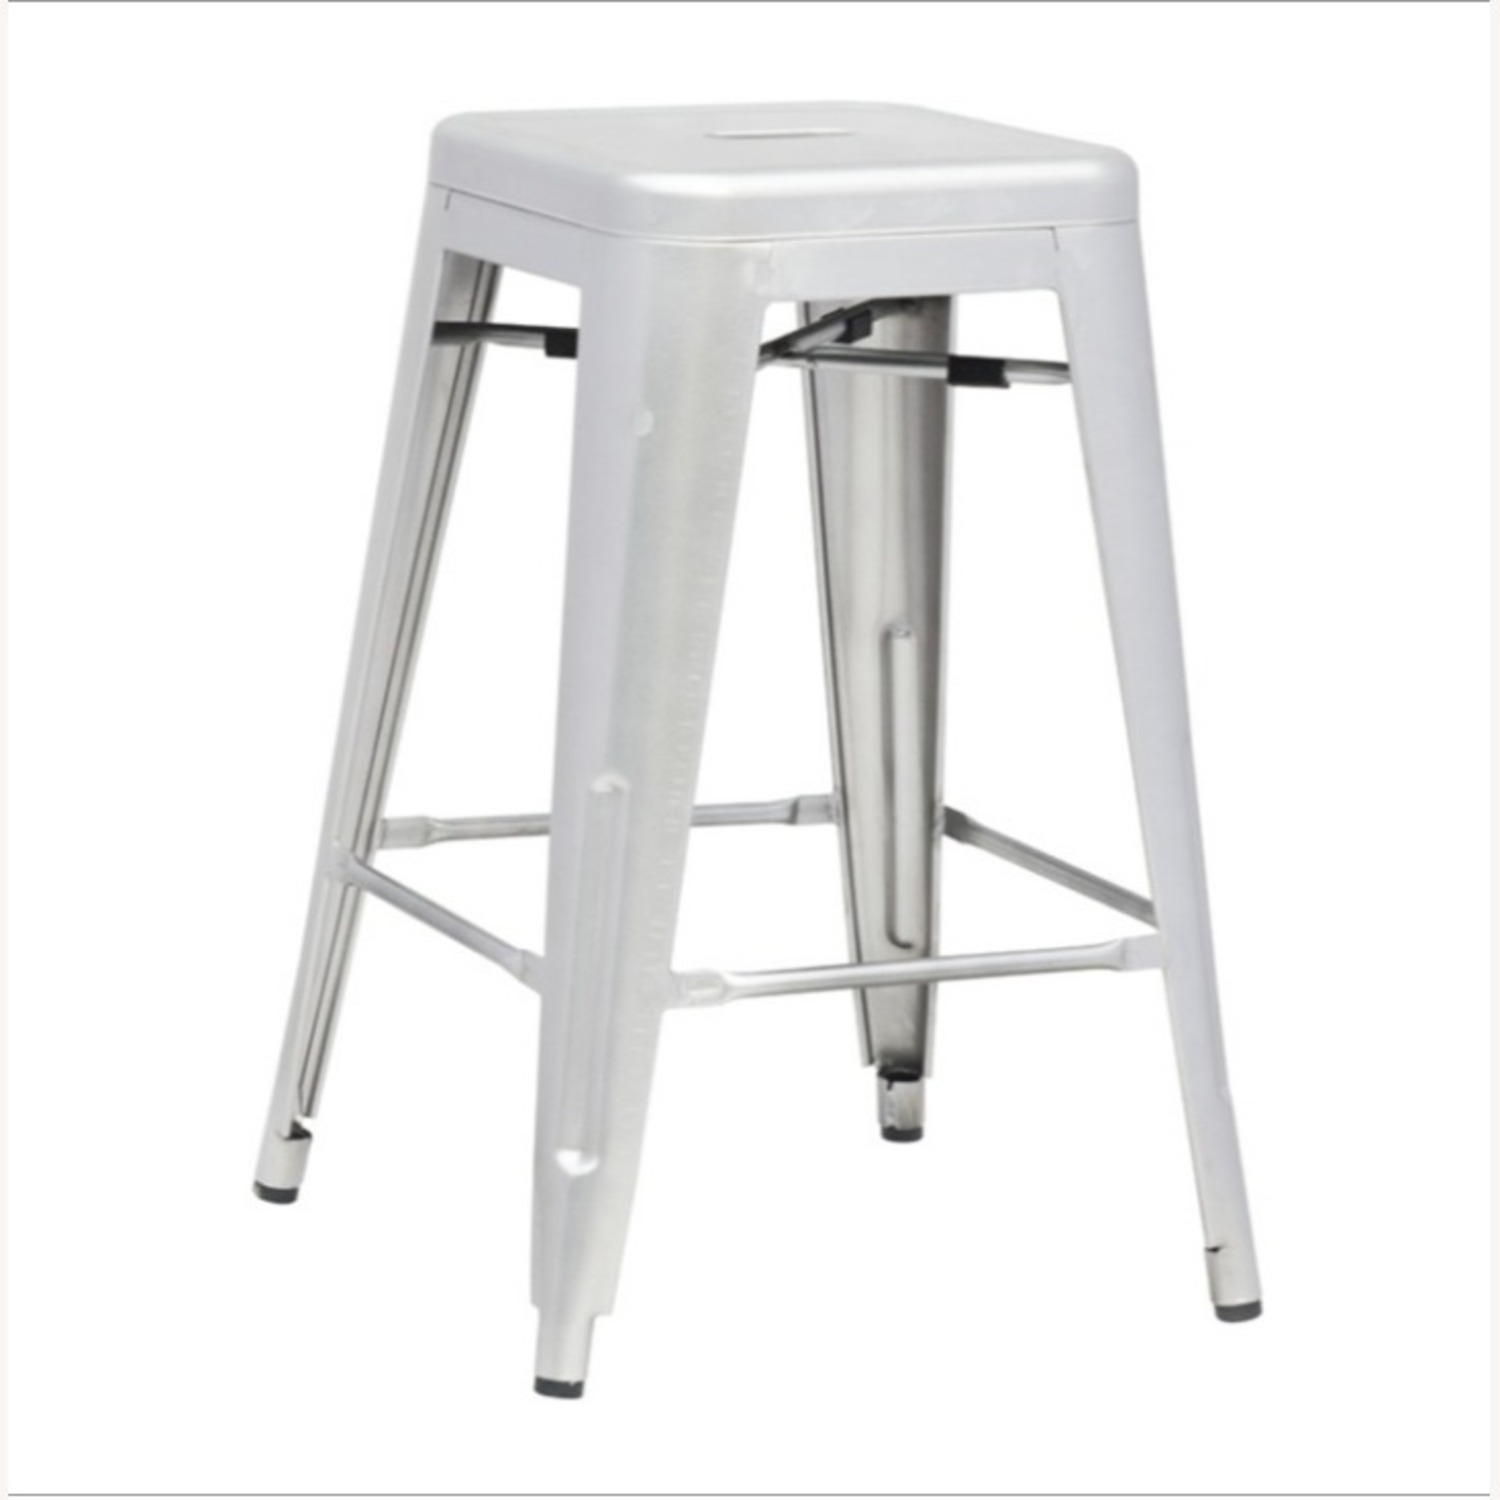 Contemporary Bar Stool In Silver Galvanized Steel - image-3